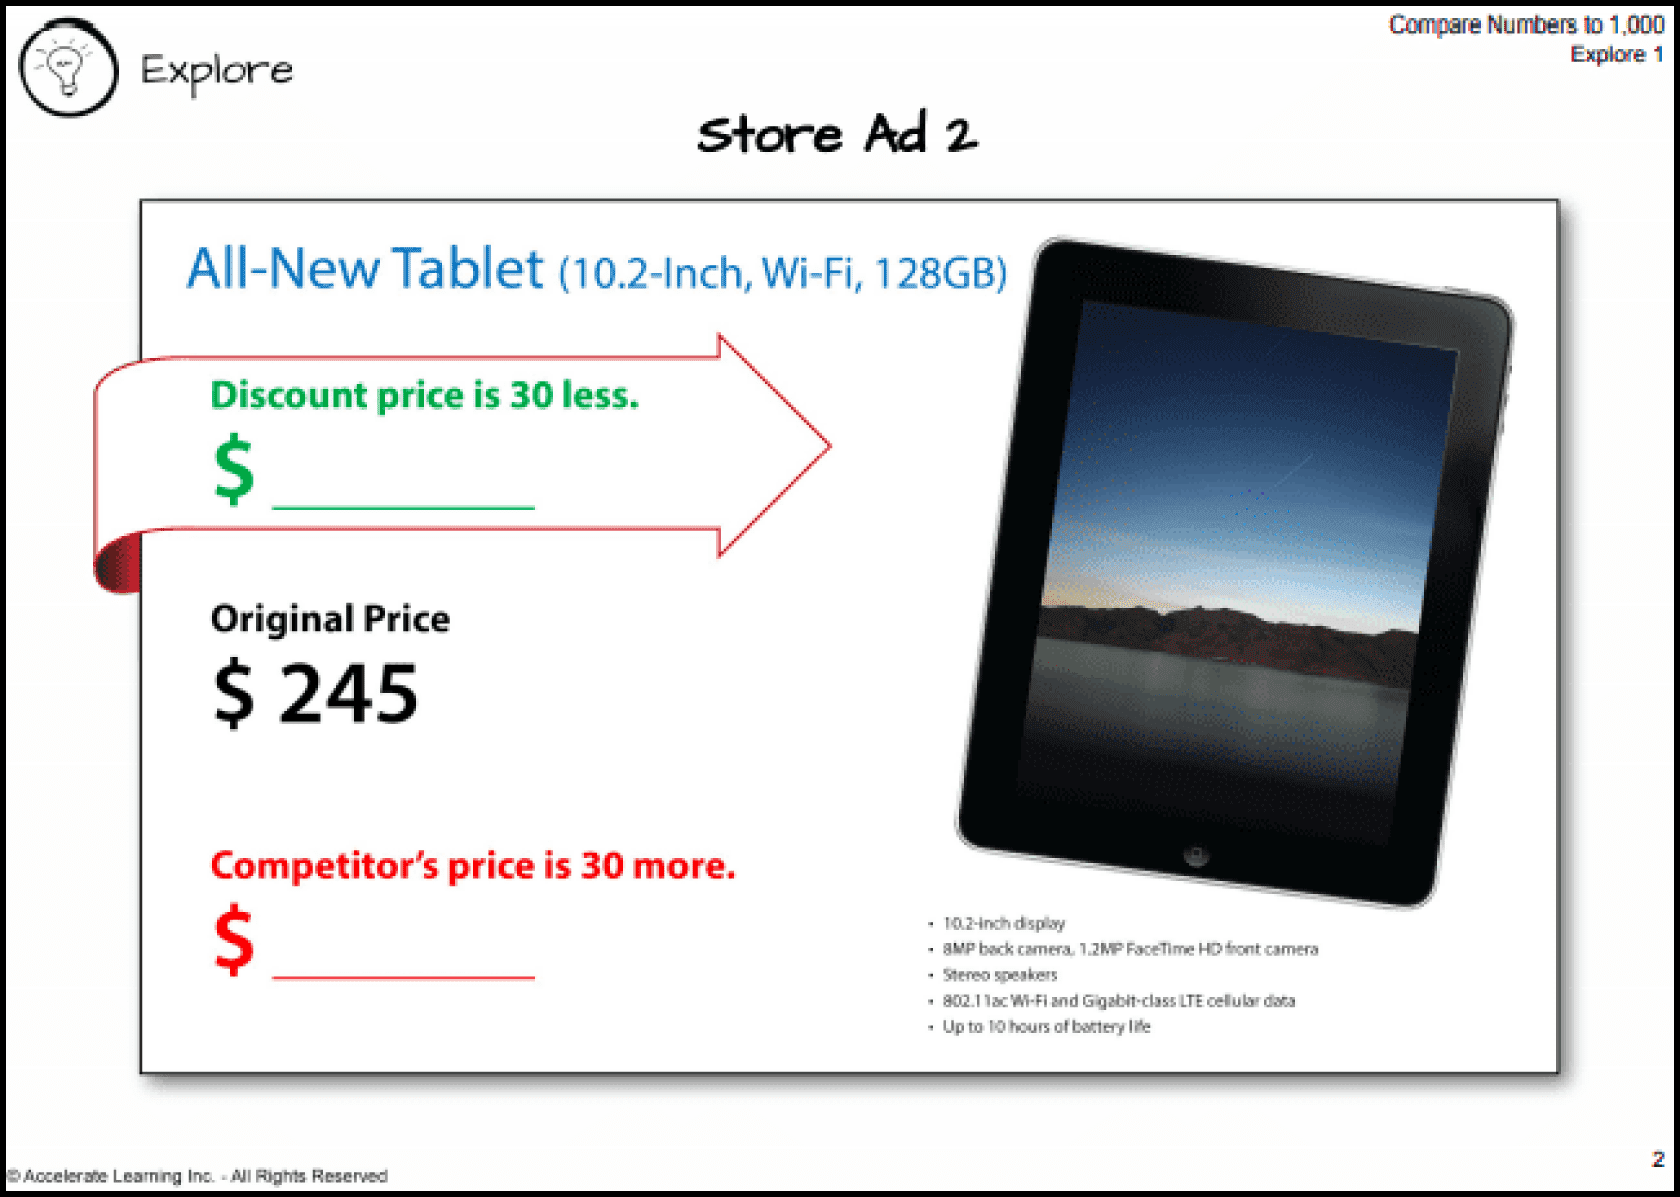 image of real world looking ad for an ipad on sale